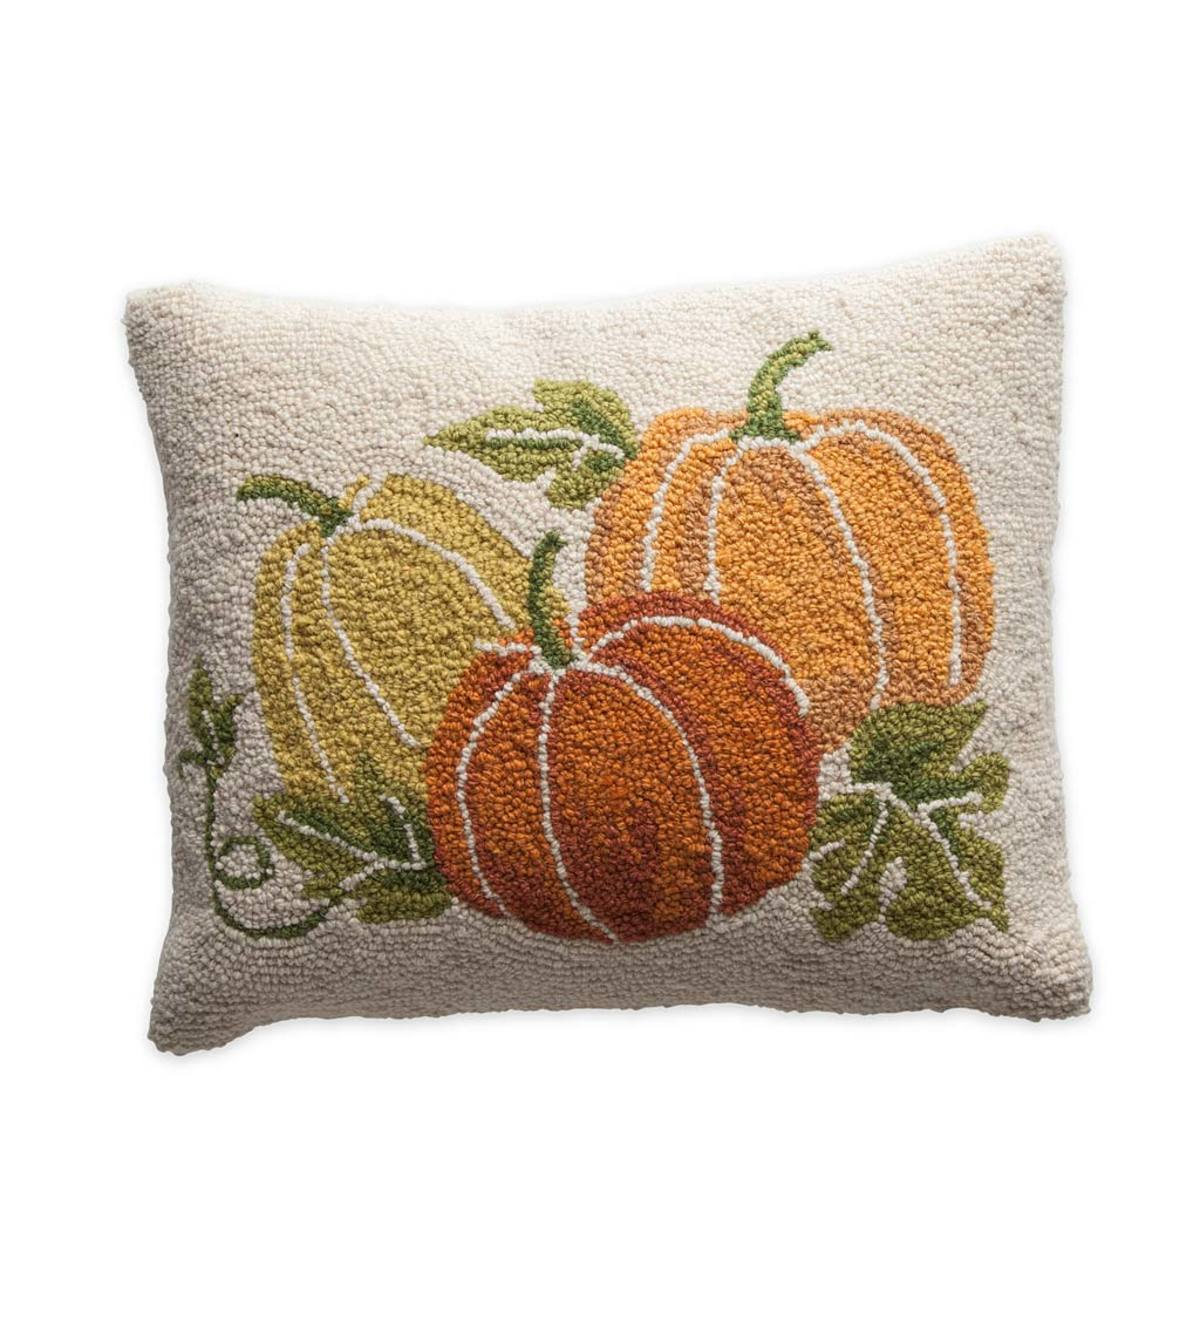 Hand-Hooked Wool Pumpkin Pillow